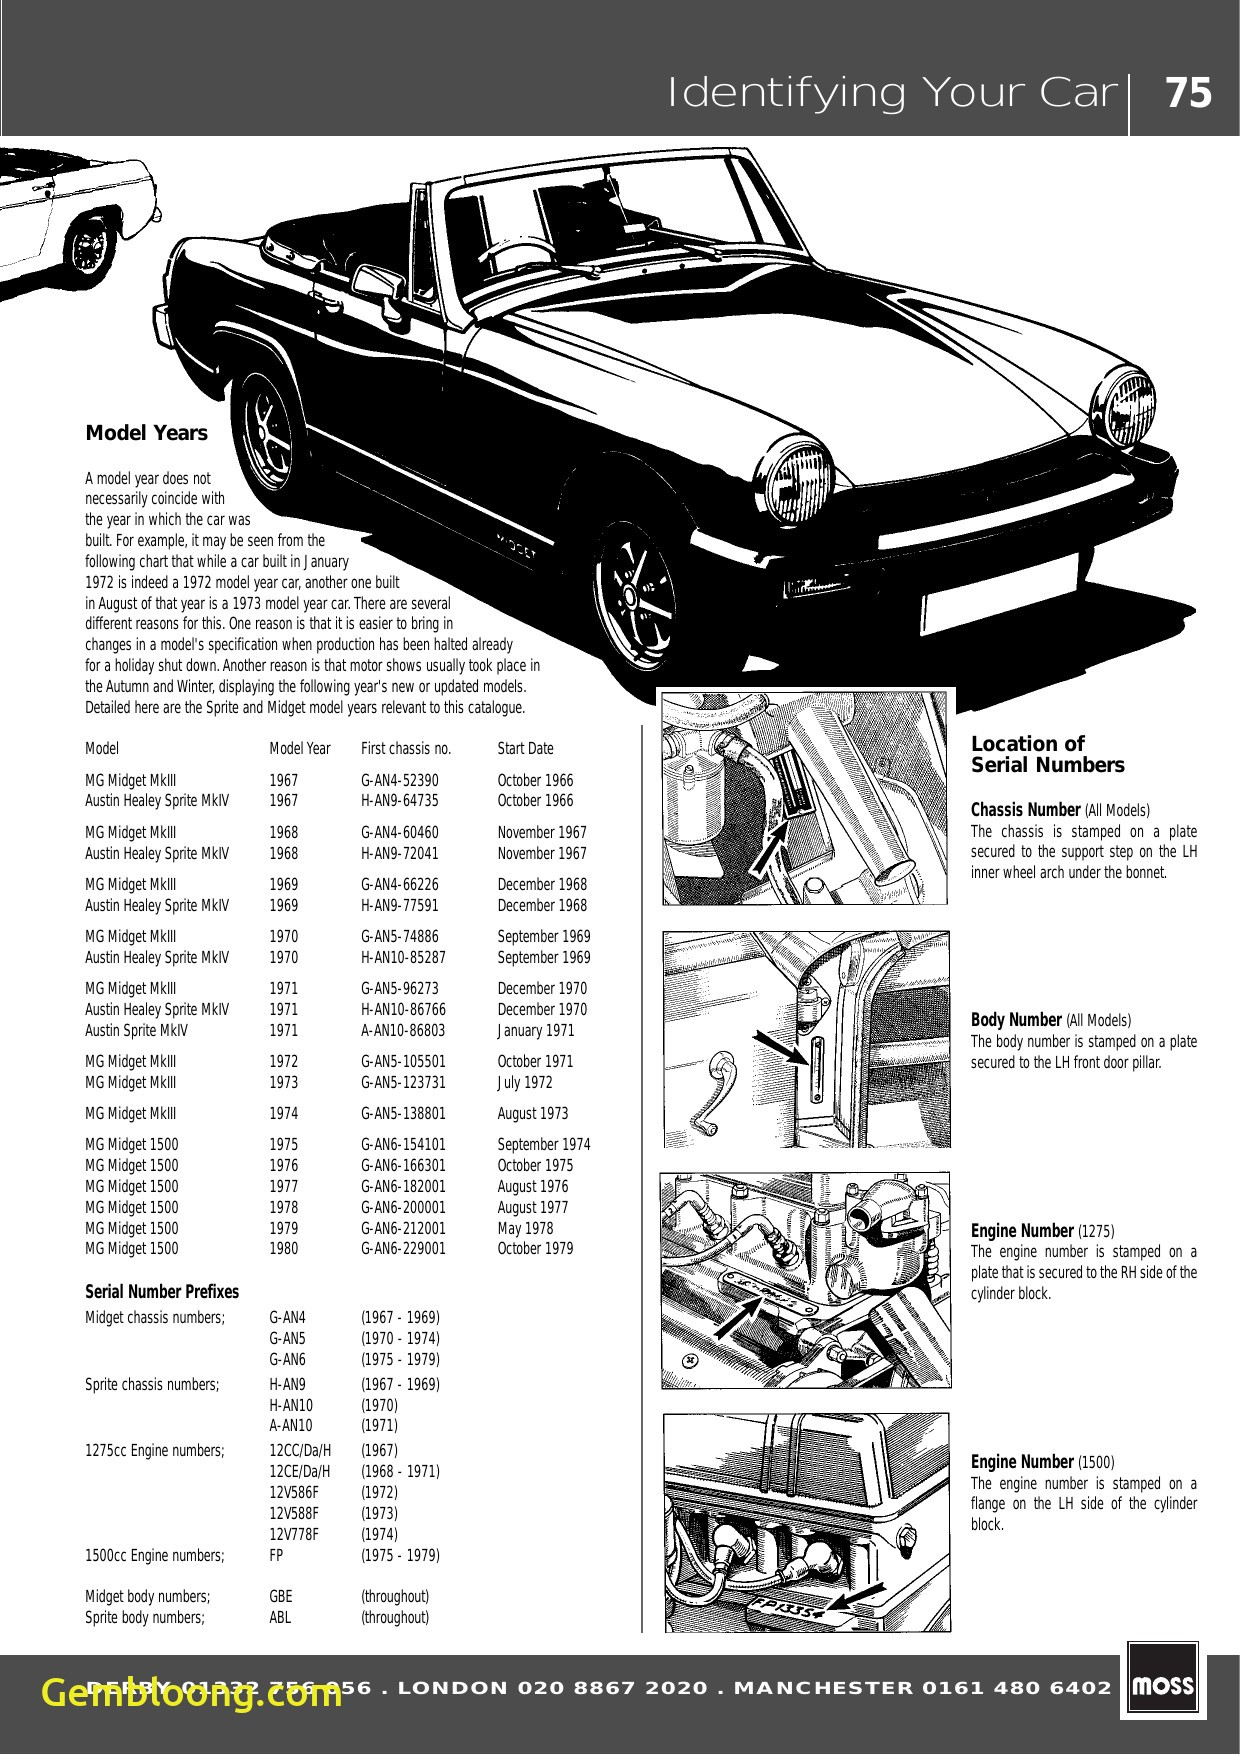 rhd vehicles for sale identifying your car 75 nostalgic british cars of rhd vehicles for sale